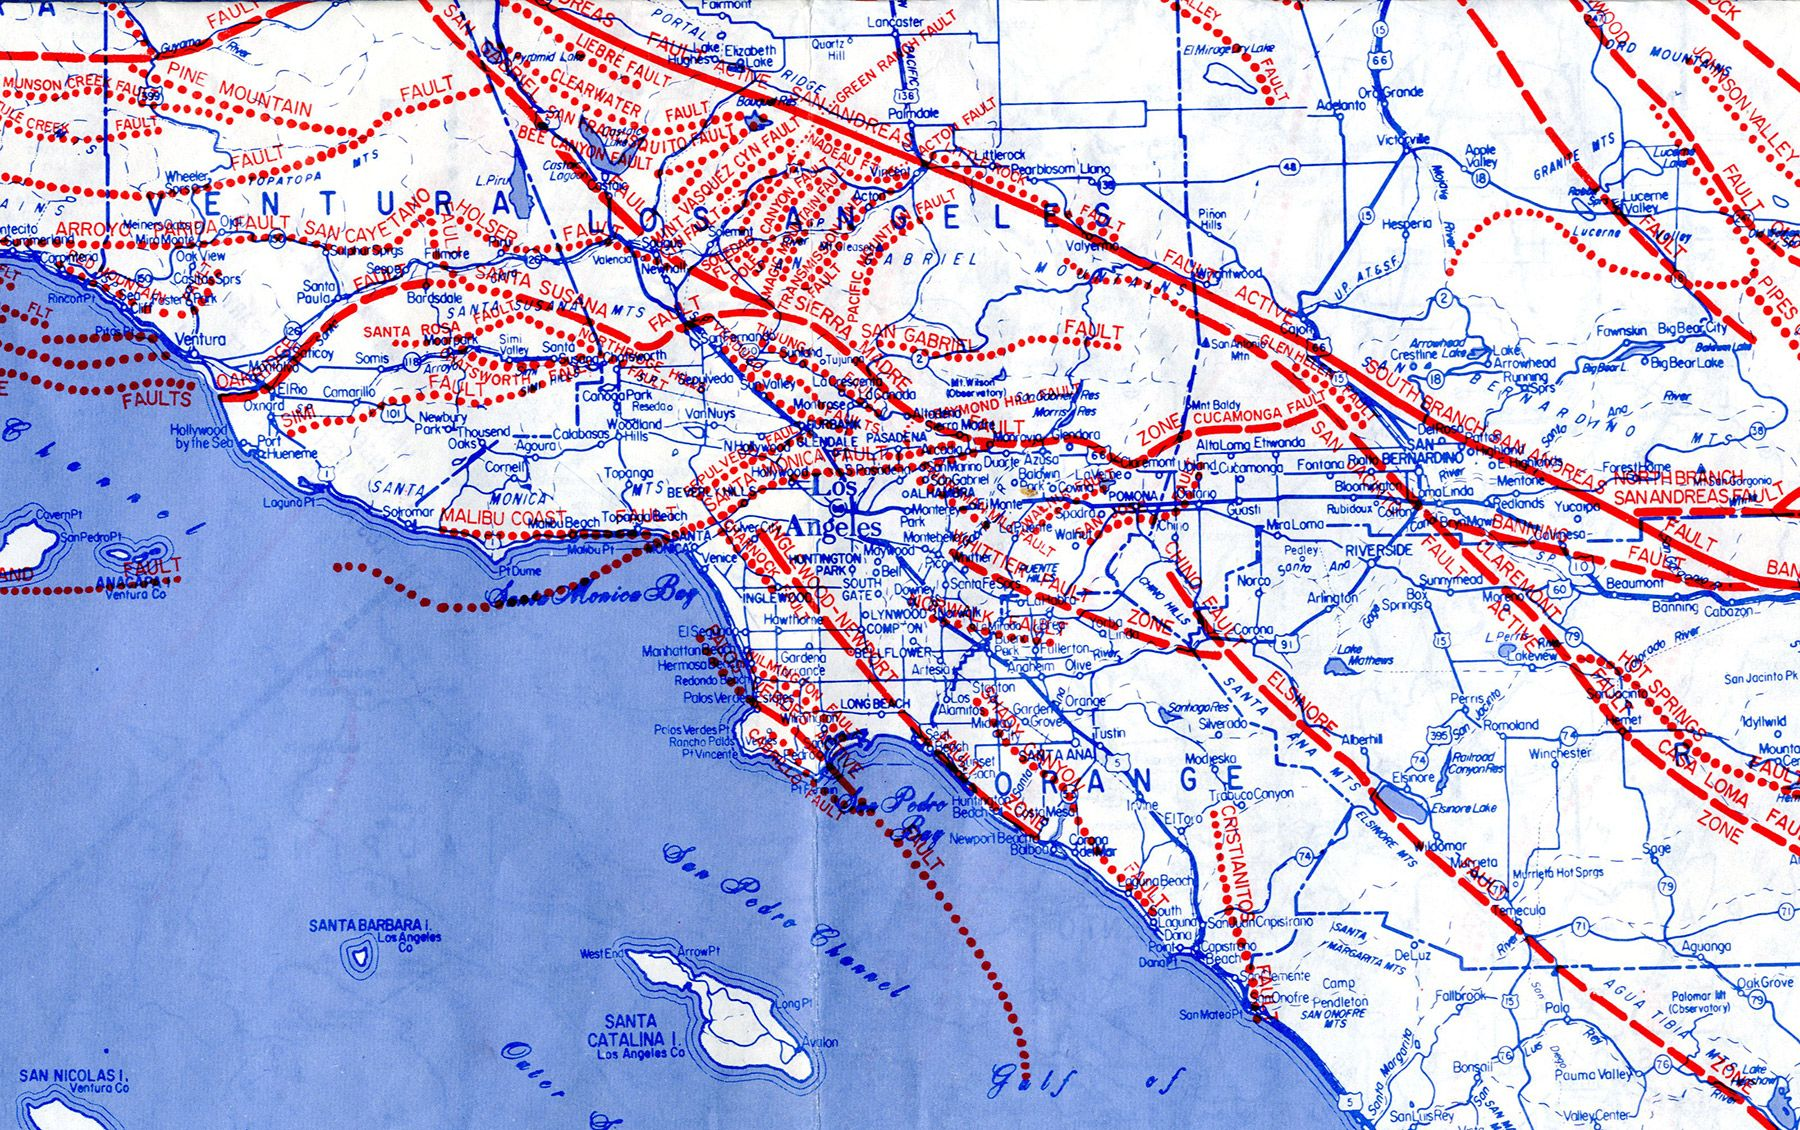 LA Public Library On Earthquake Fault Terry Oquinn And - Los angeles fault zone map